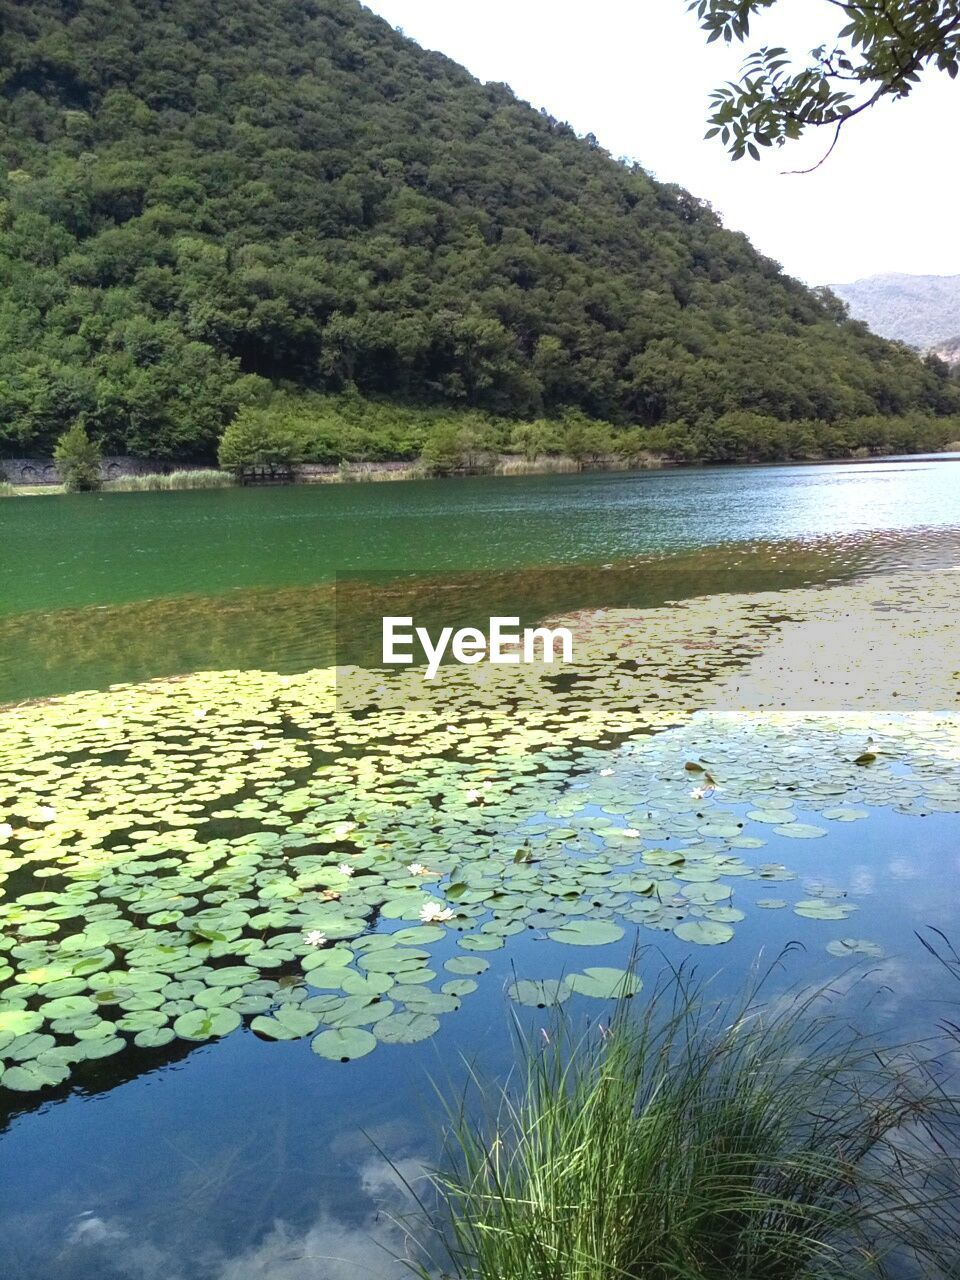 water, nature, lake, beauty in nature, tree, growth, tranquility, tranquil scene, scenics, day, plant, outdoors, no people, reflection, leaf, mountain, waterfront, green color, floating on water, lily pad, flower, sky